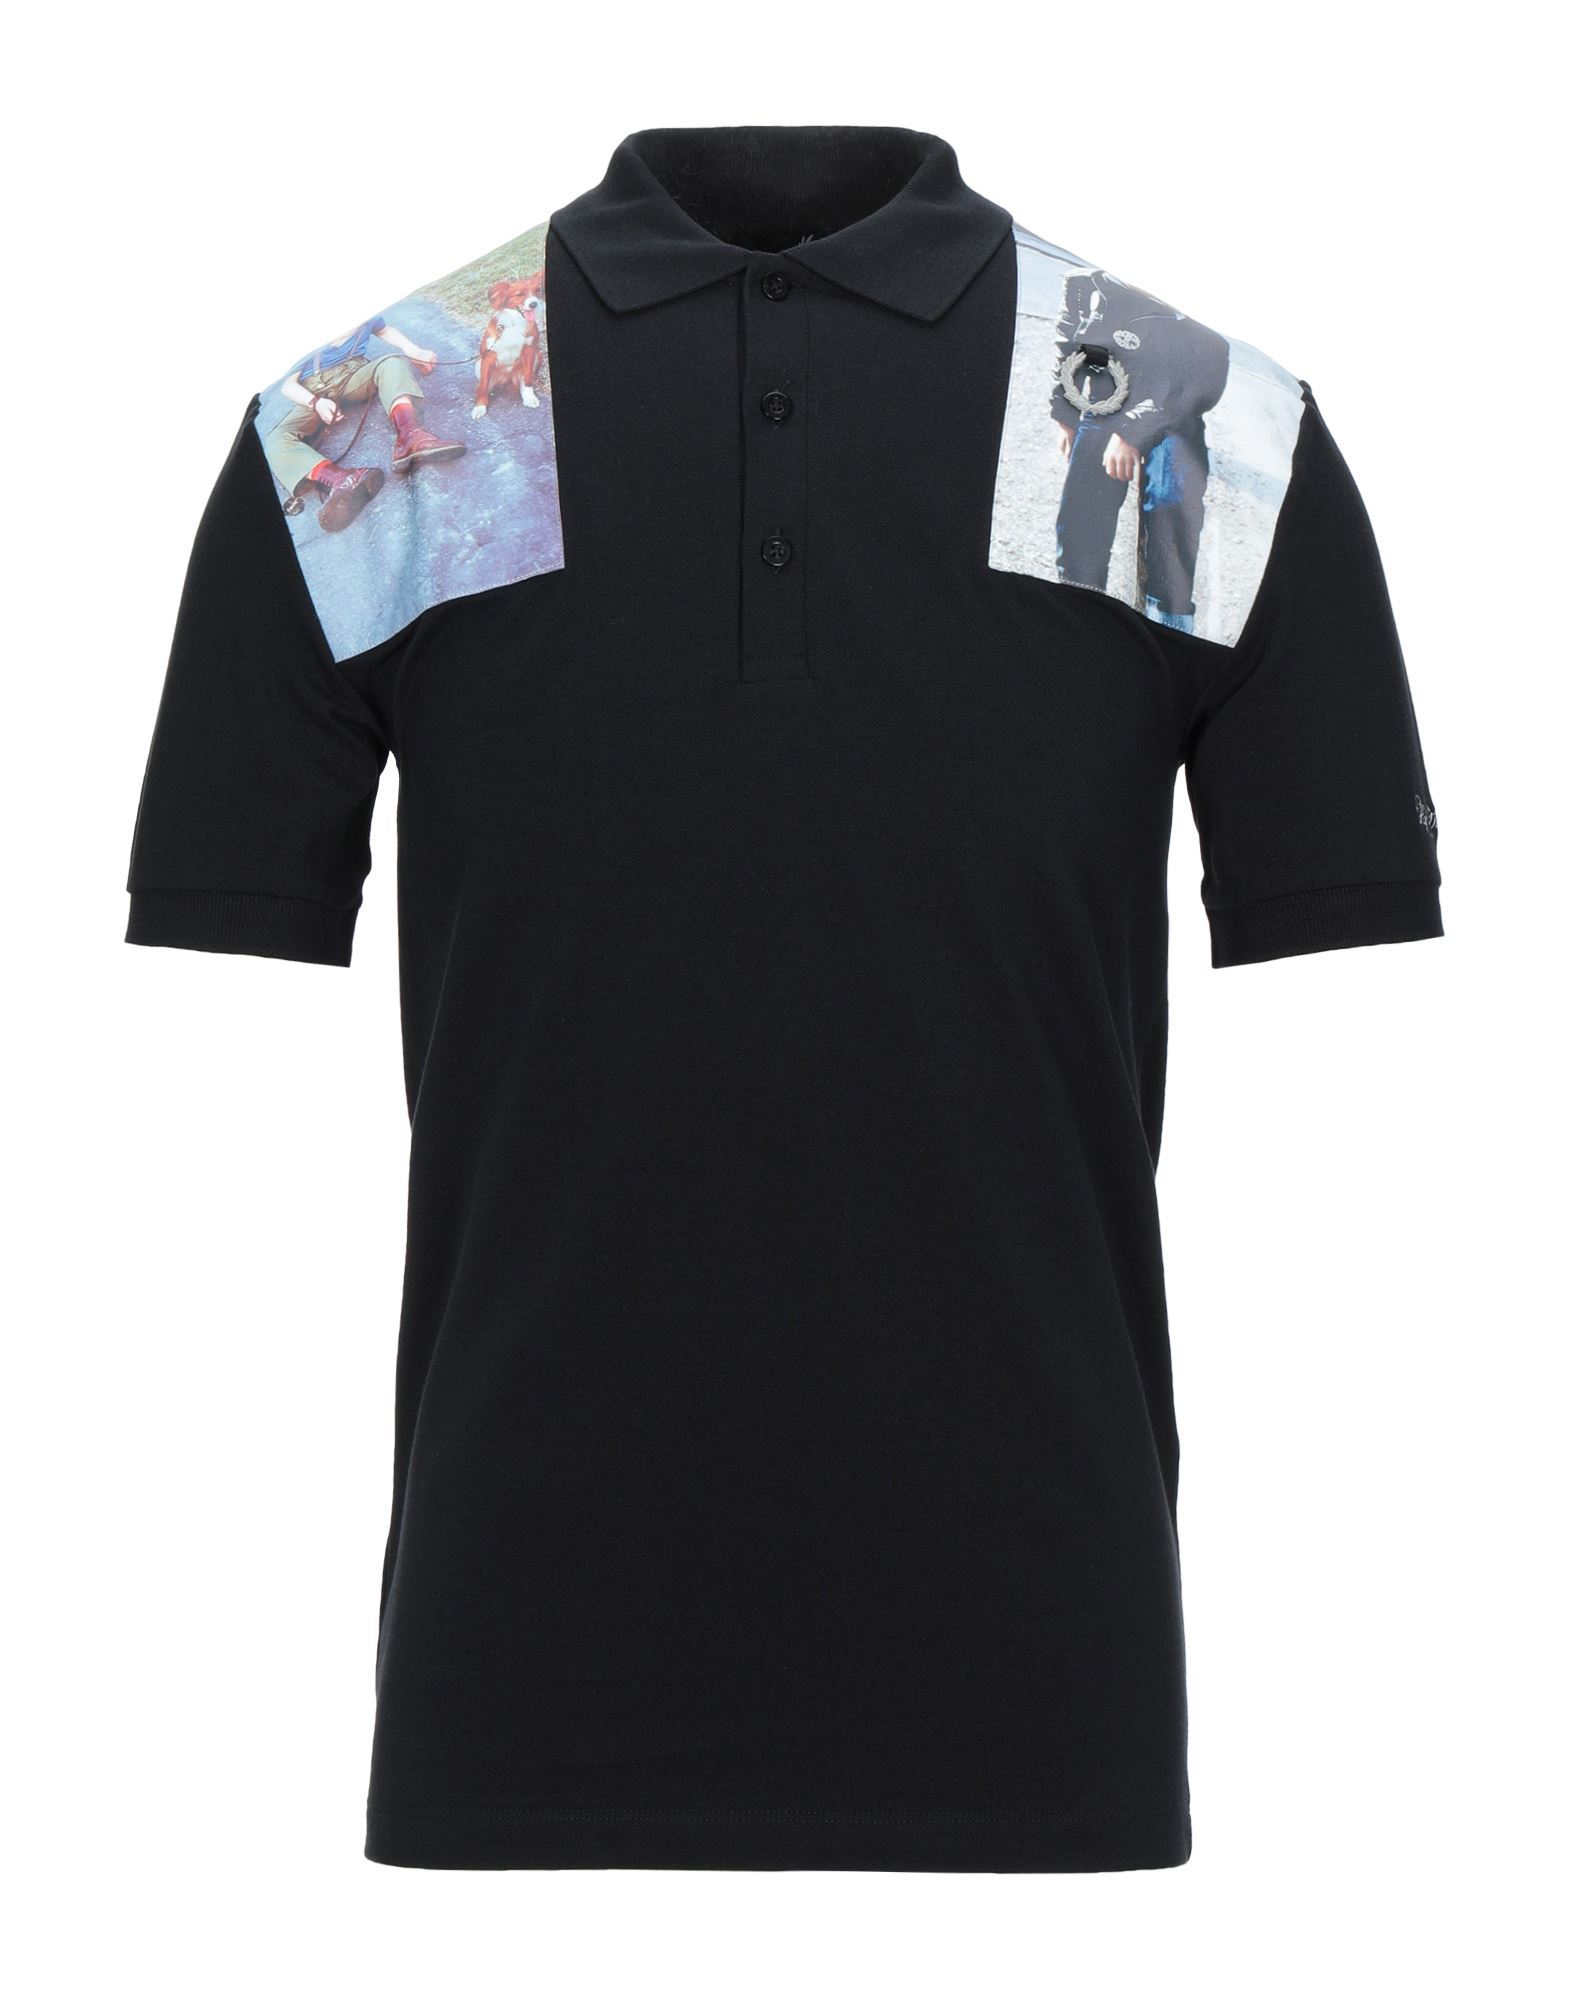 поло fred perry fred perry fr006emzzx66 RAF SIMONS FRED PERRY Поло